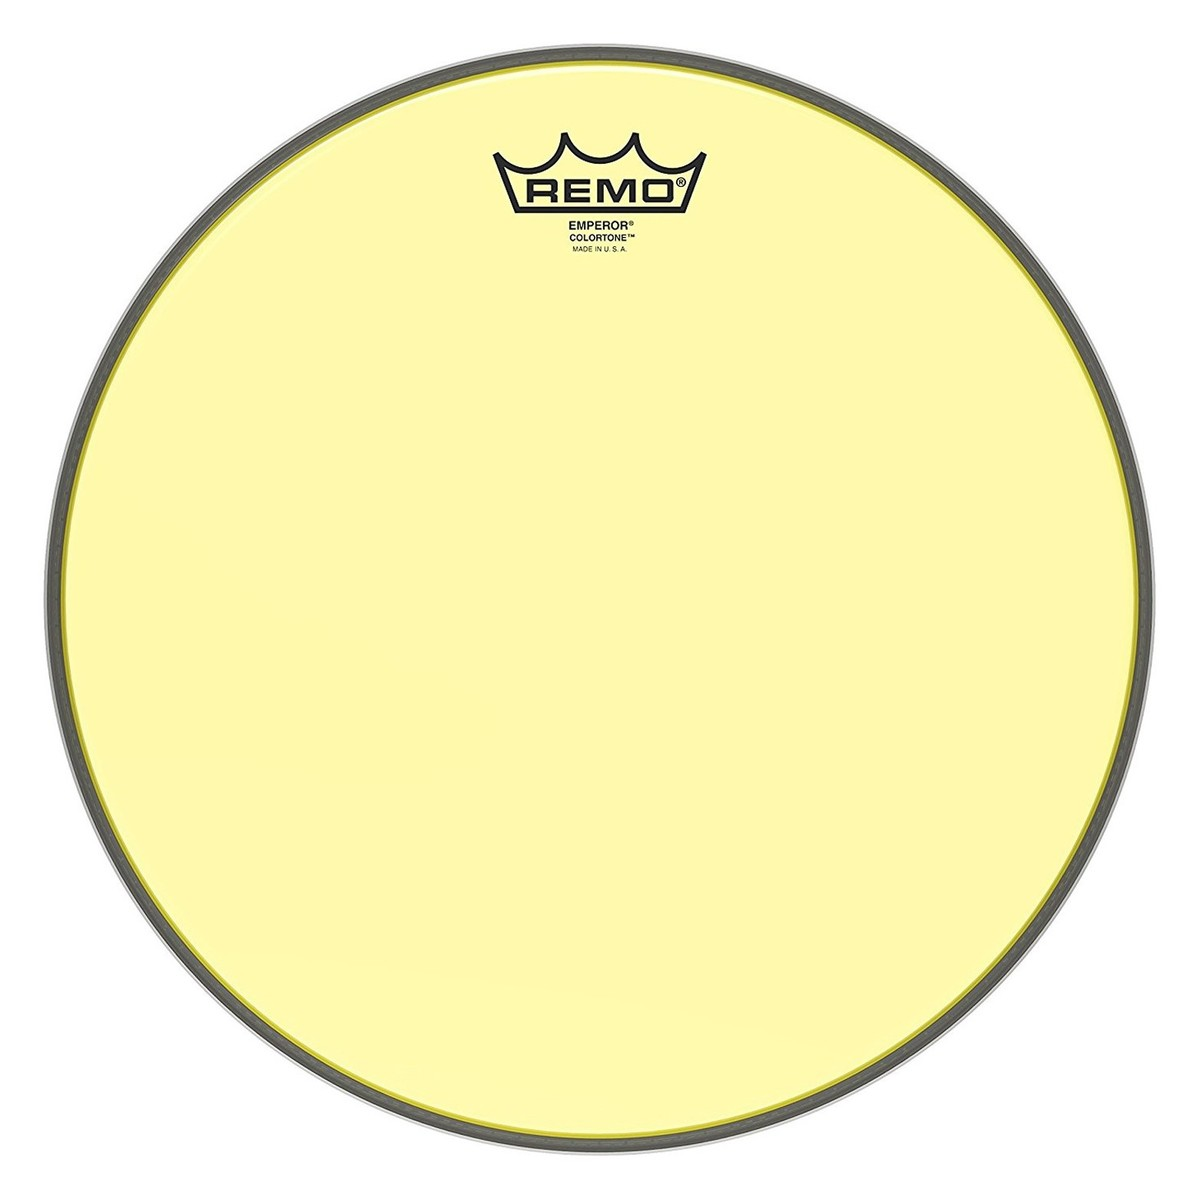 Remo Emperor Colortone Yellow 13 Drum Head